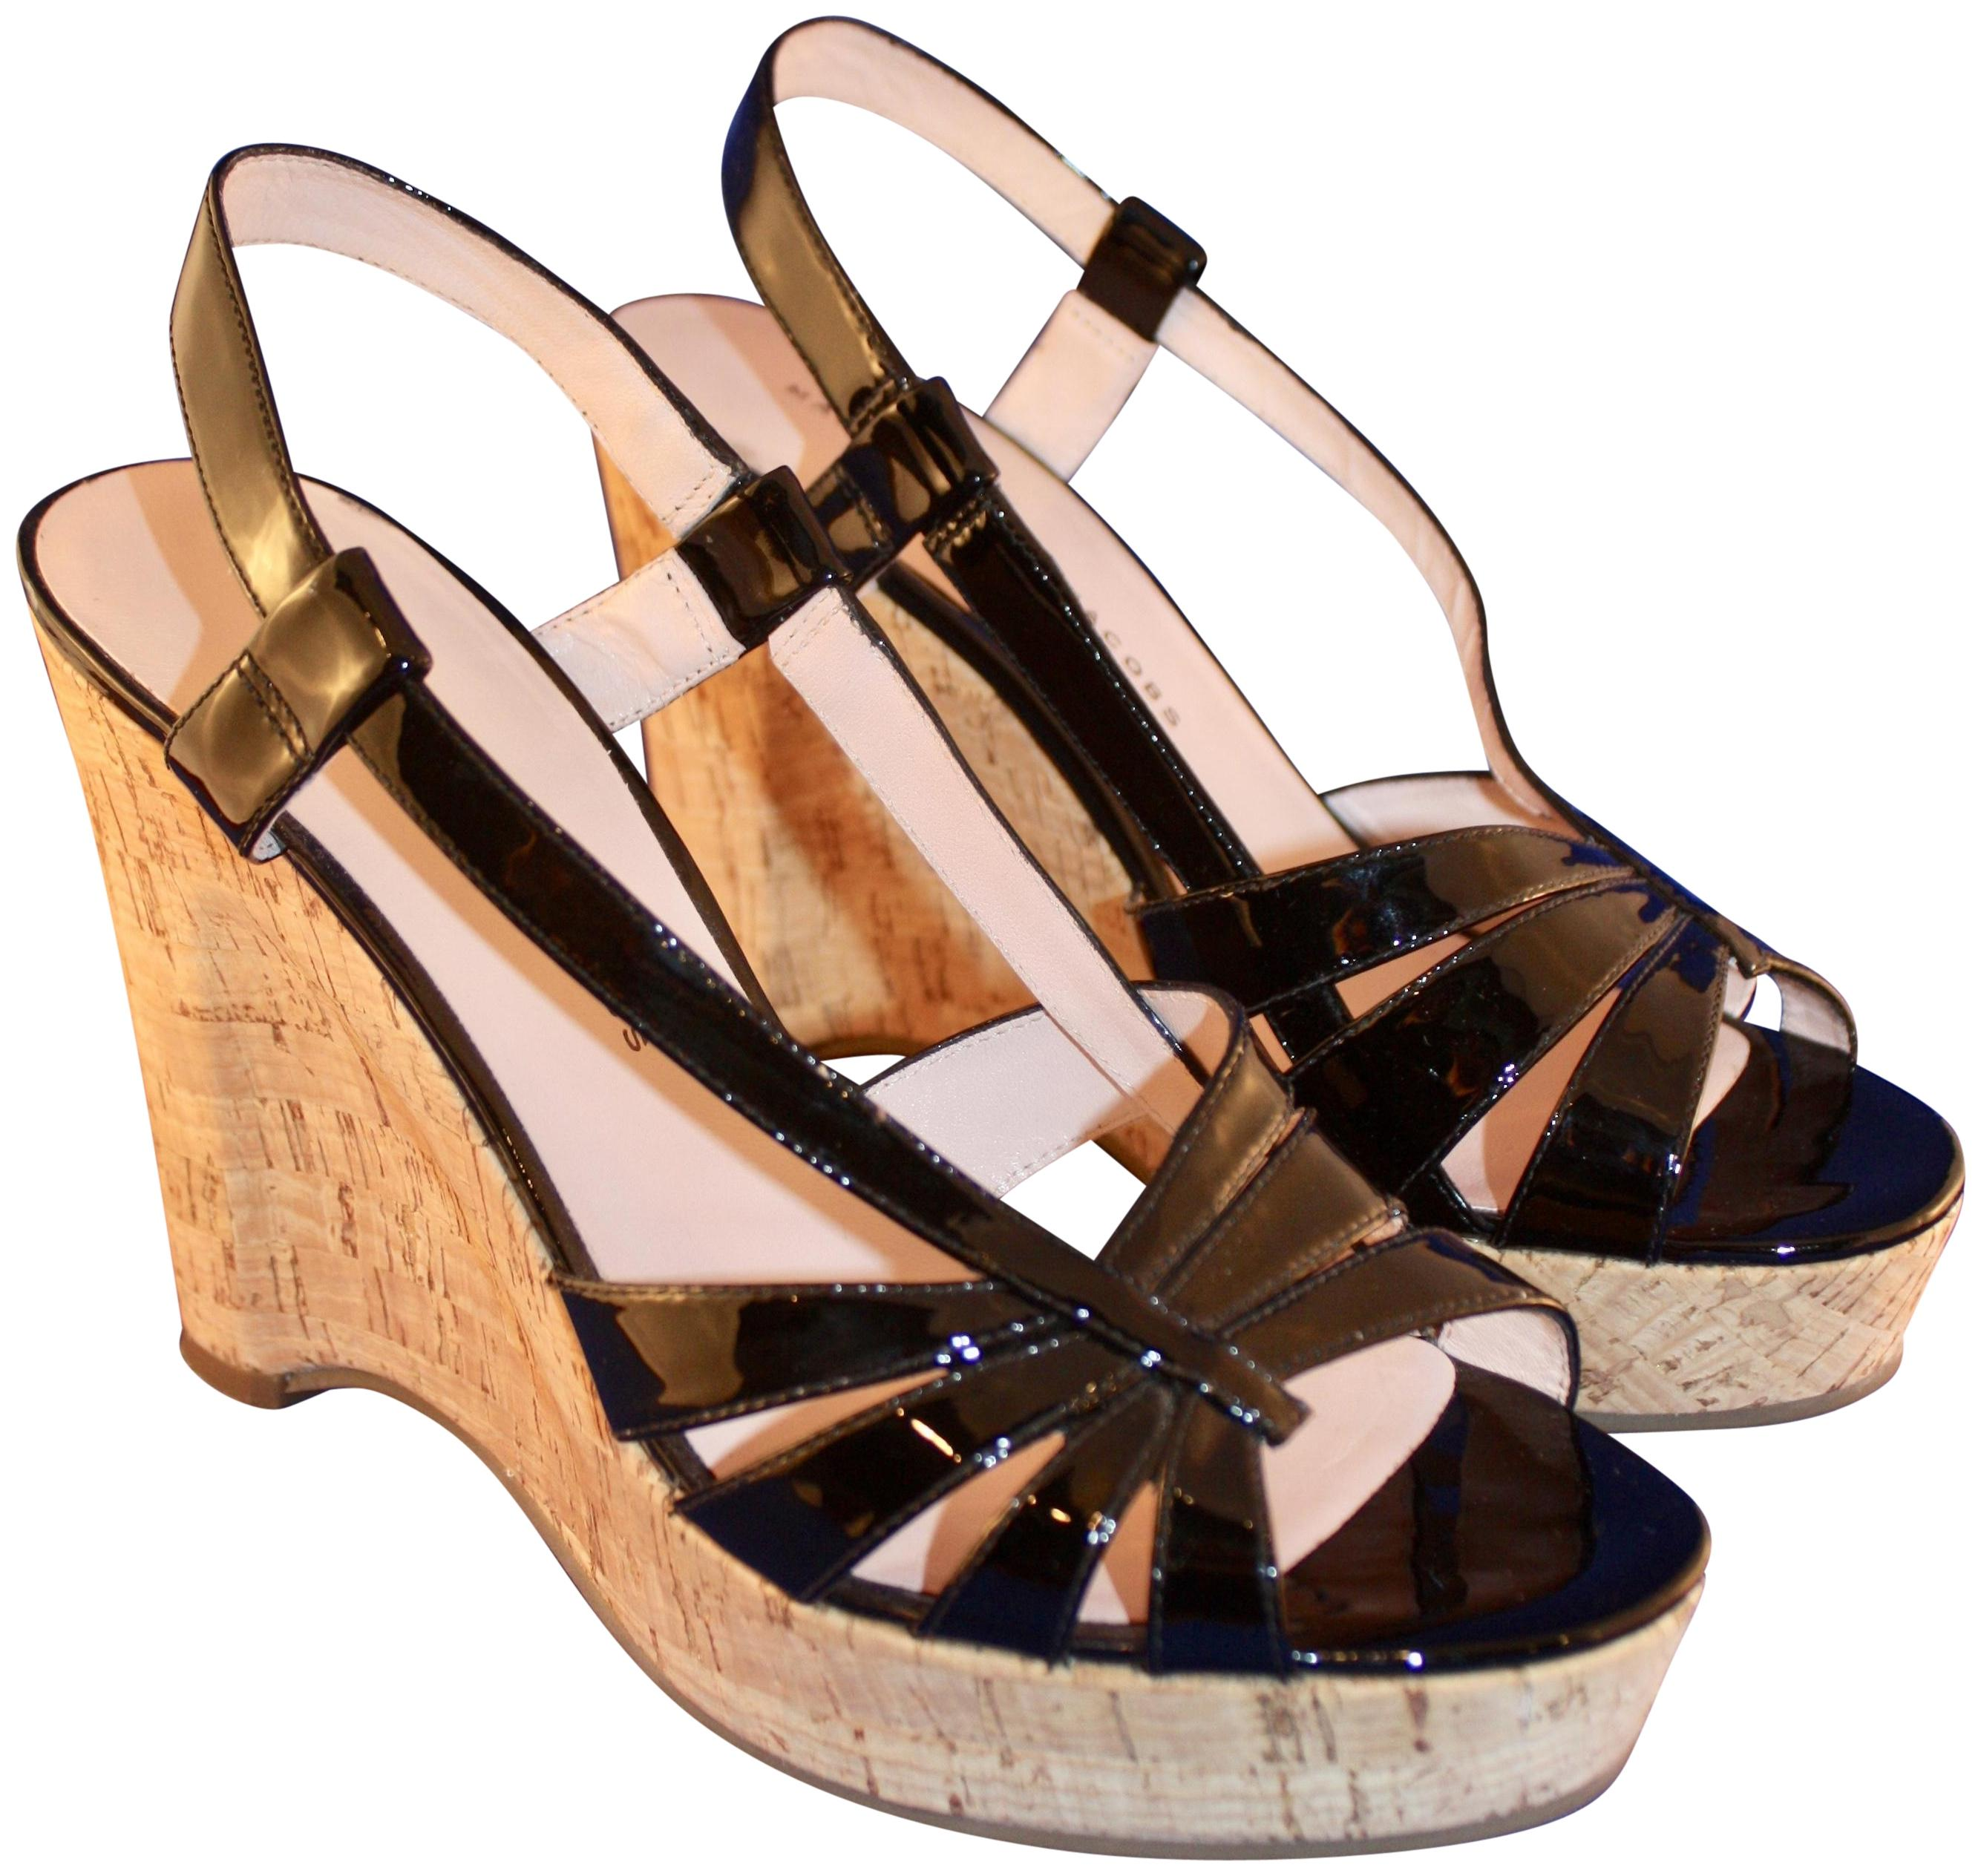 Marc by Marc Jacobs Patent Leather Slingback Sandals sale purchase cheap affordable cost cheap online cheap sale visa payment AVpMB8m88